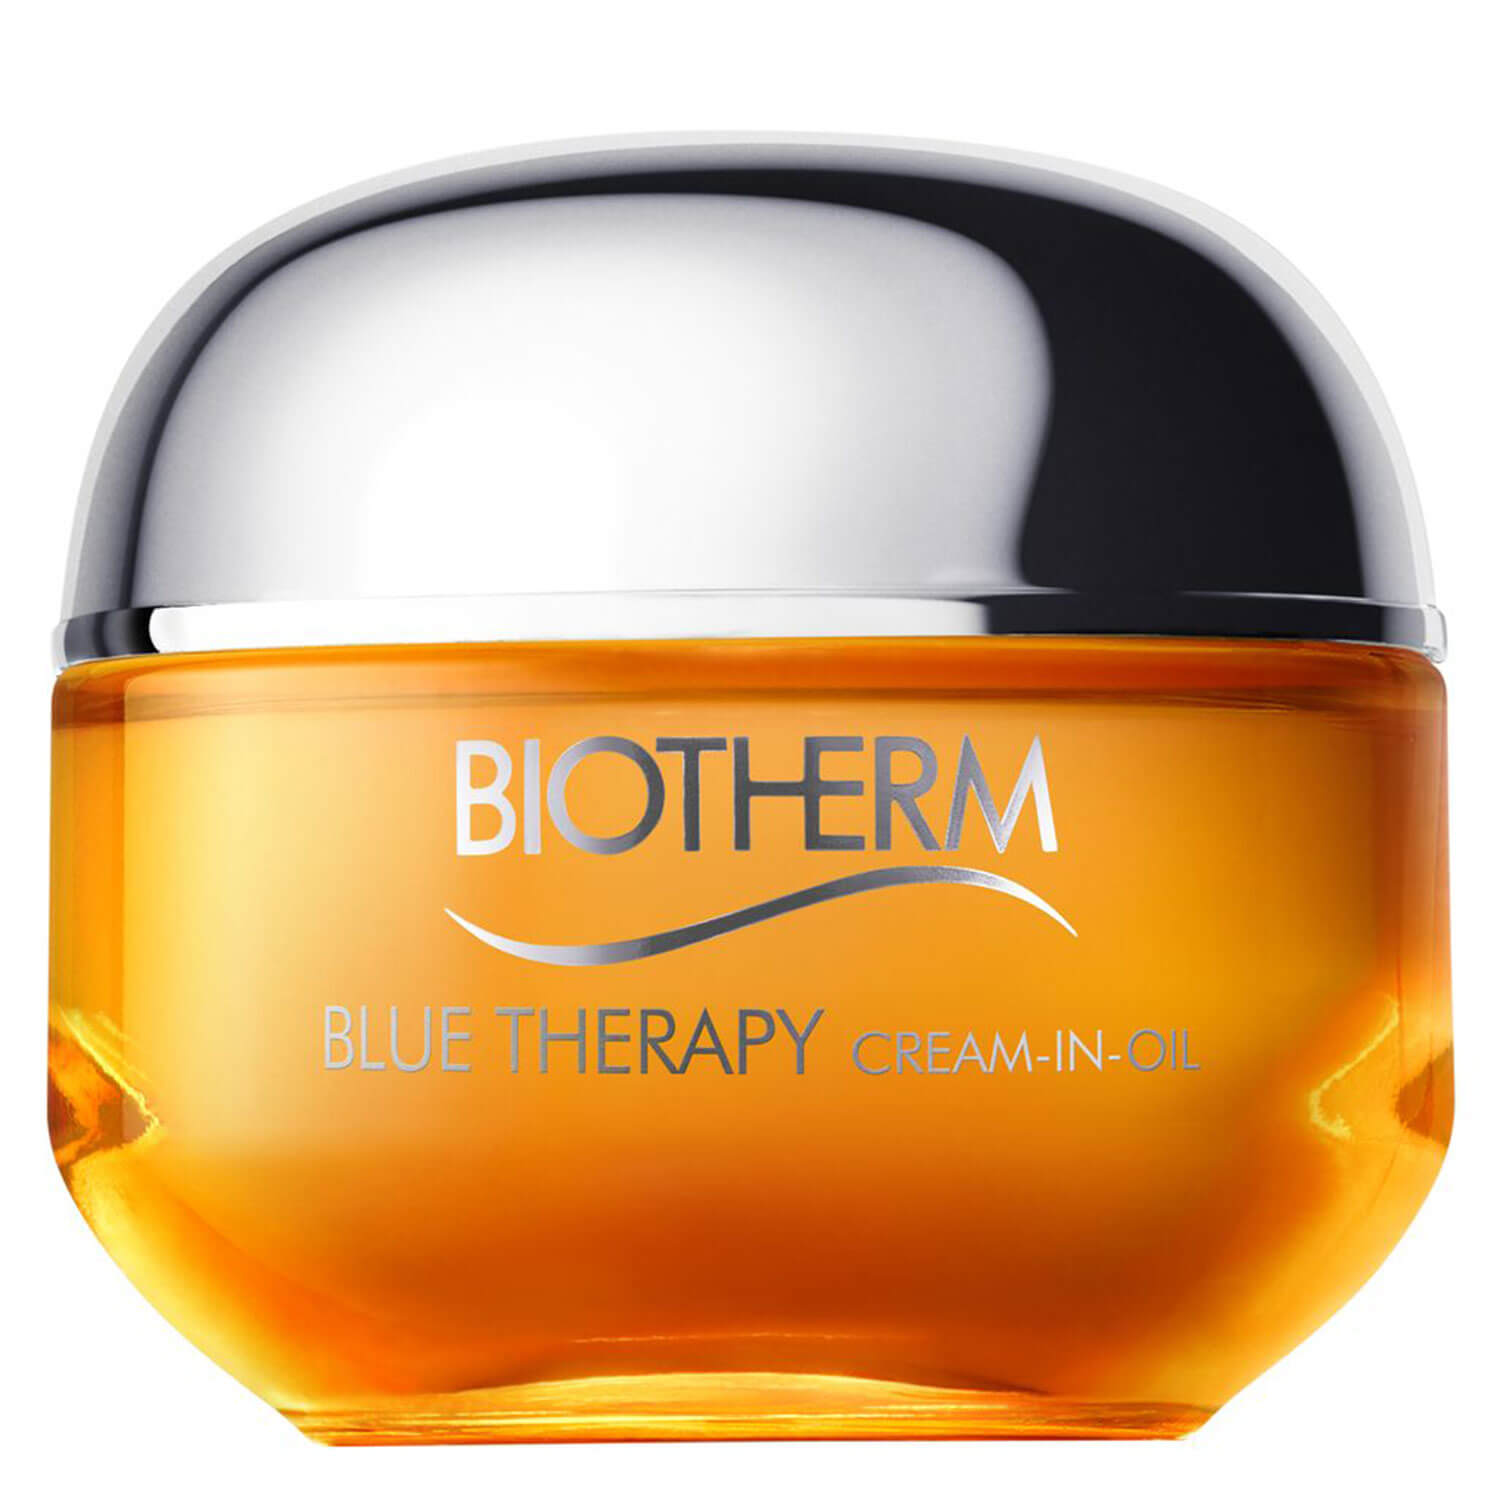 Blue Therapy - Cream-In-Oil Normal/Dry Skin